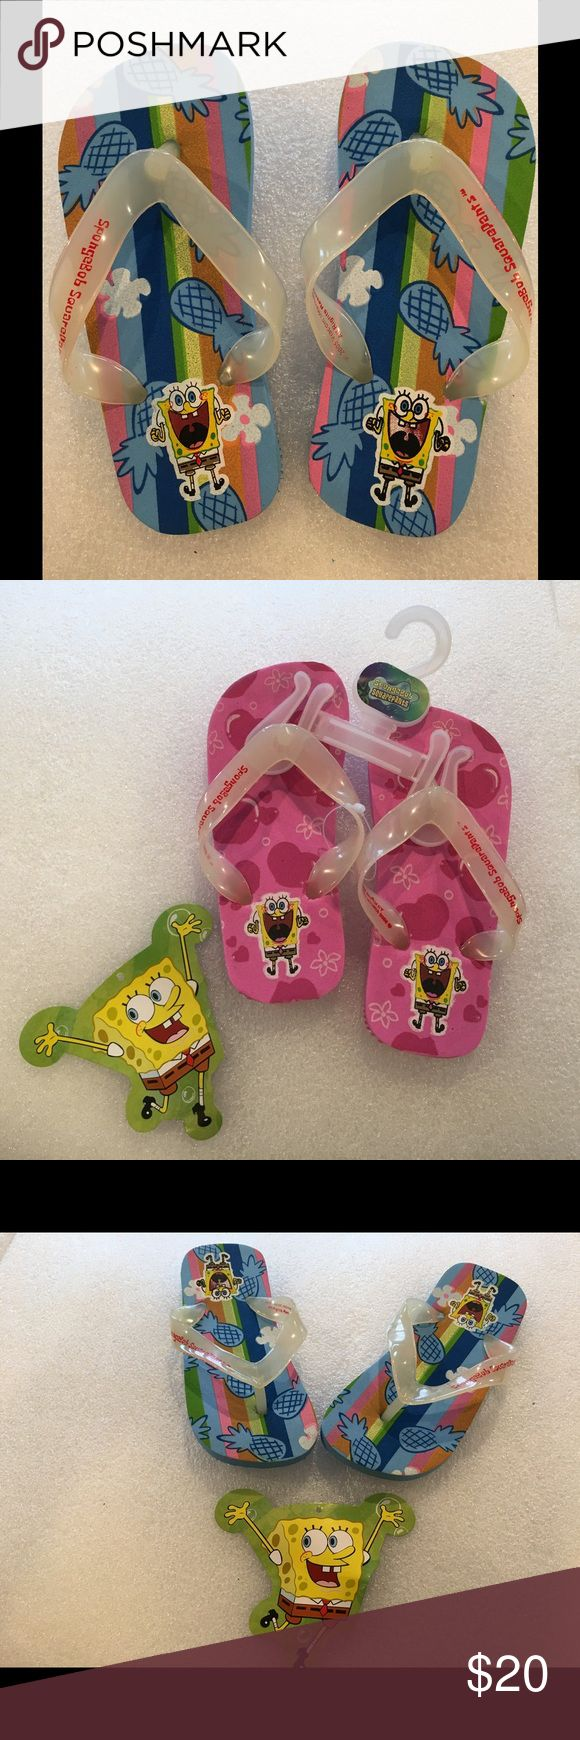 NWT original Spongebob flip flops The original Nickelodeon spongebob square pants flip flops.  For boys and girls. Larger quantity discounts available as well. They are a kids favorite, for birthday gifts or anytime you want to see a smile on your child's face 😃larger quantities available Shoes Sandals & Flip Flops